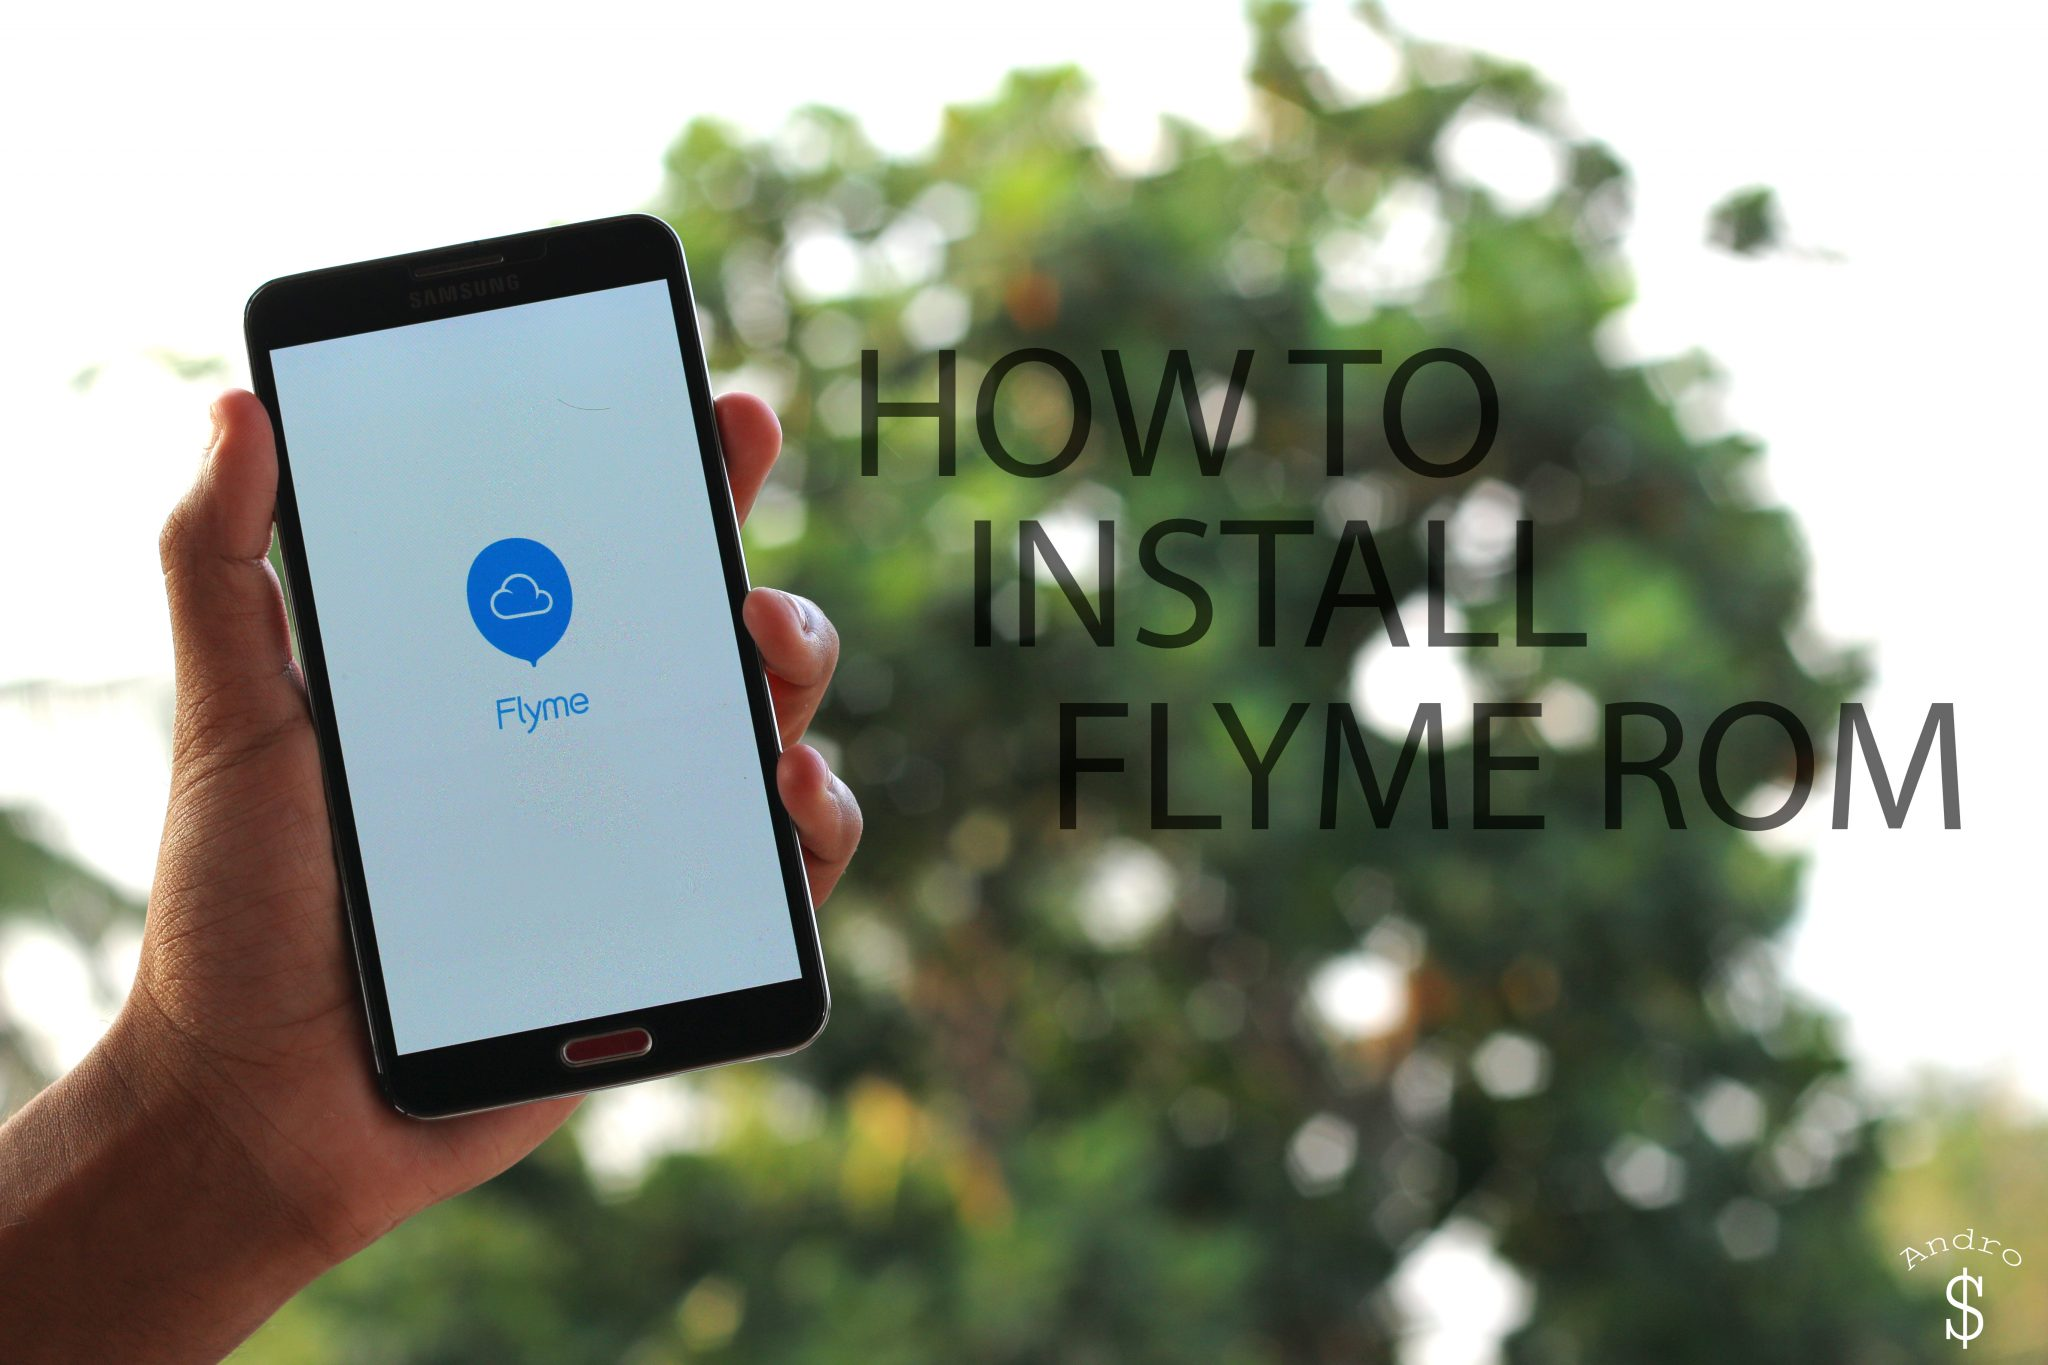 HOW TO INSTALL FLYME ROM